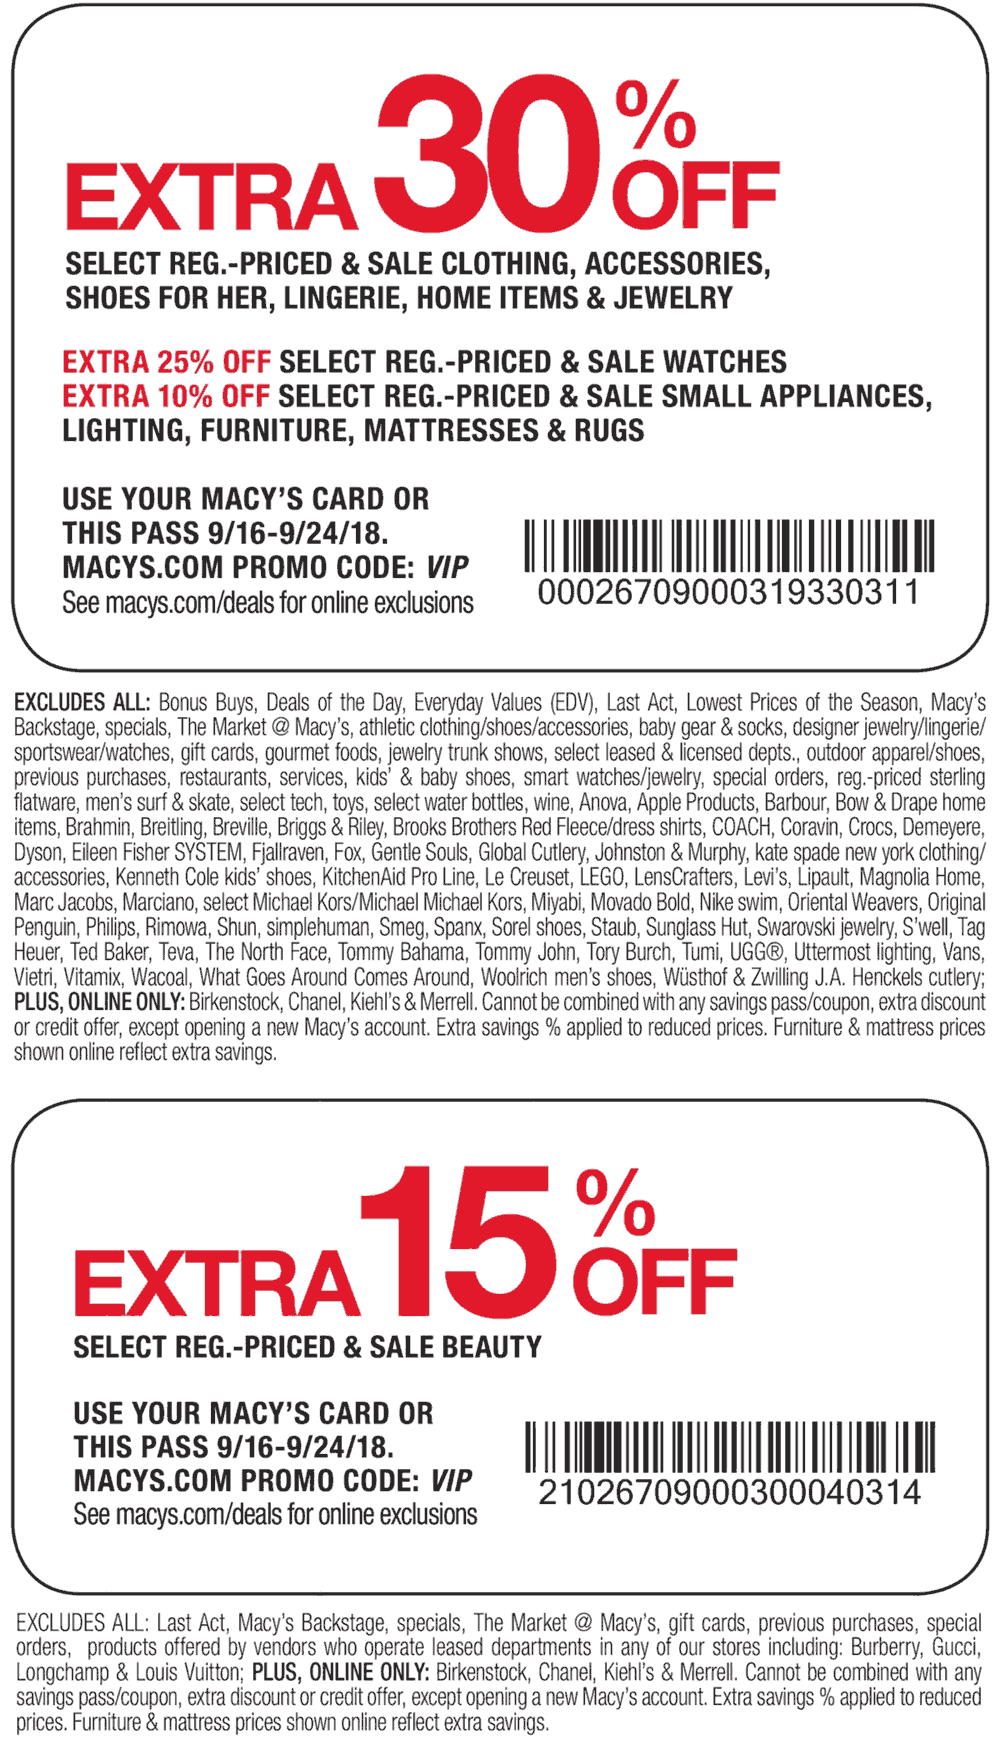 Pinned September 17th Extra 30 Off At Macys Or Online Via Promo Code Vip Thecouponsapp Shopping Coupons Macys Card Macys Promo